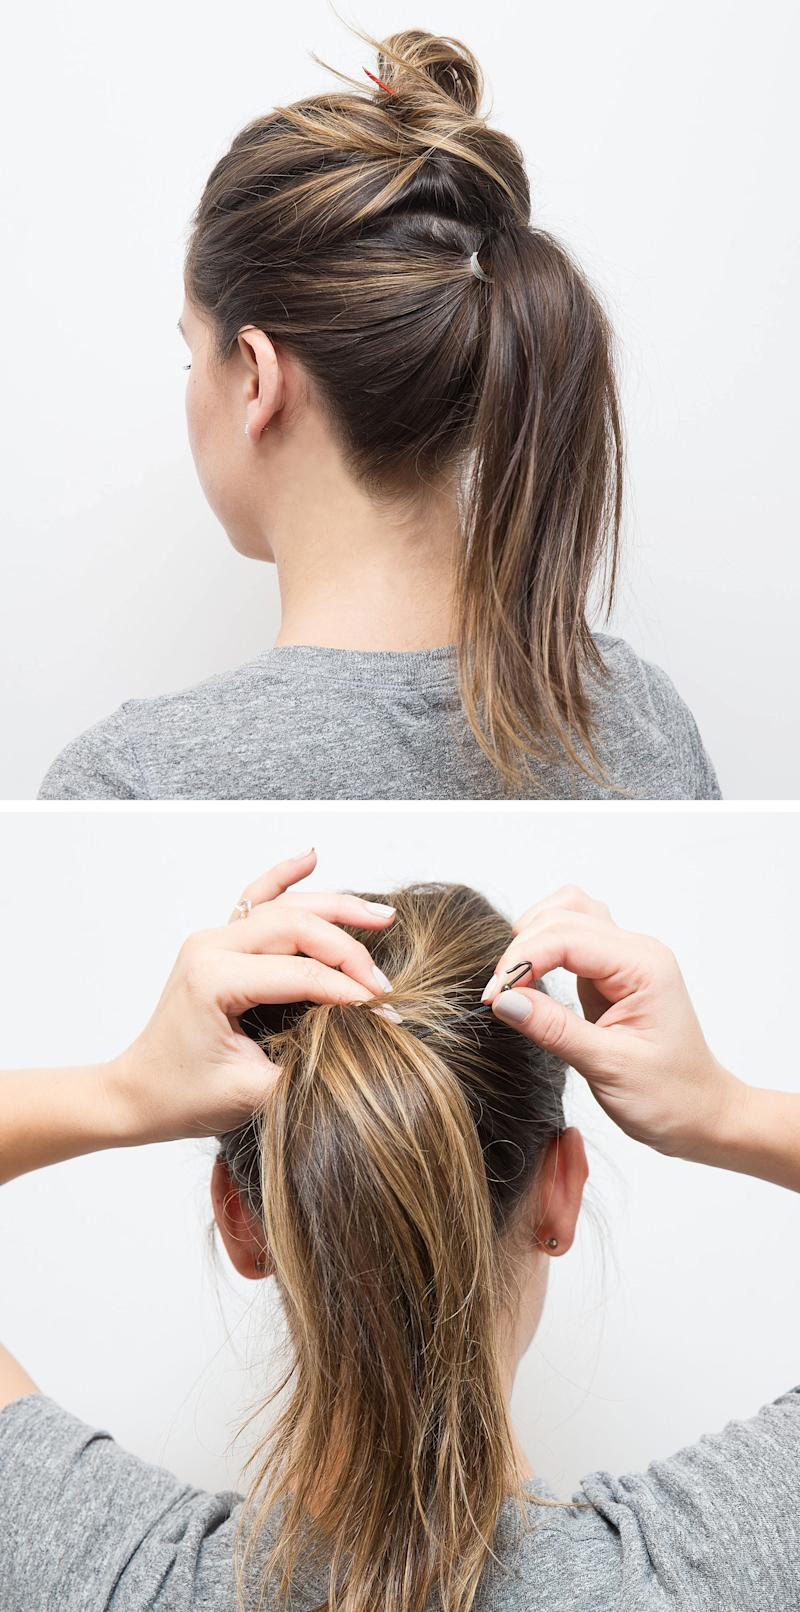 17 Hacks Thatll Make Your Hair Look So Much Fuller And Thicker